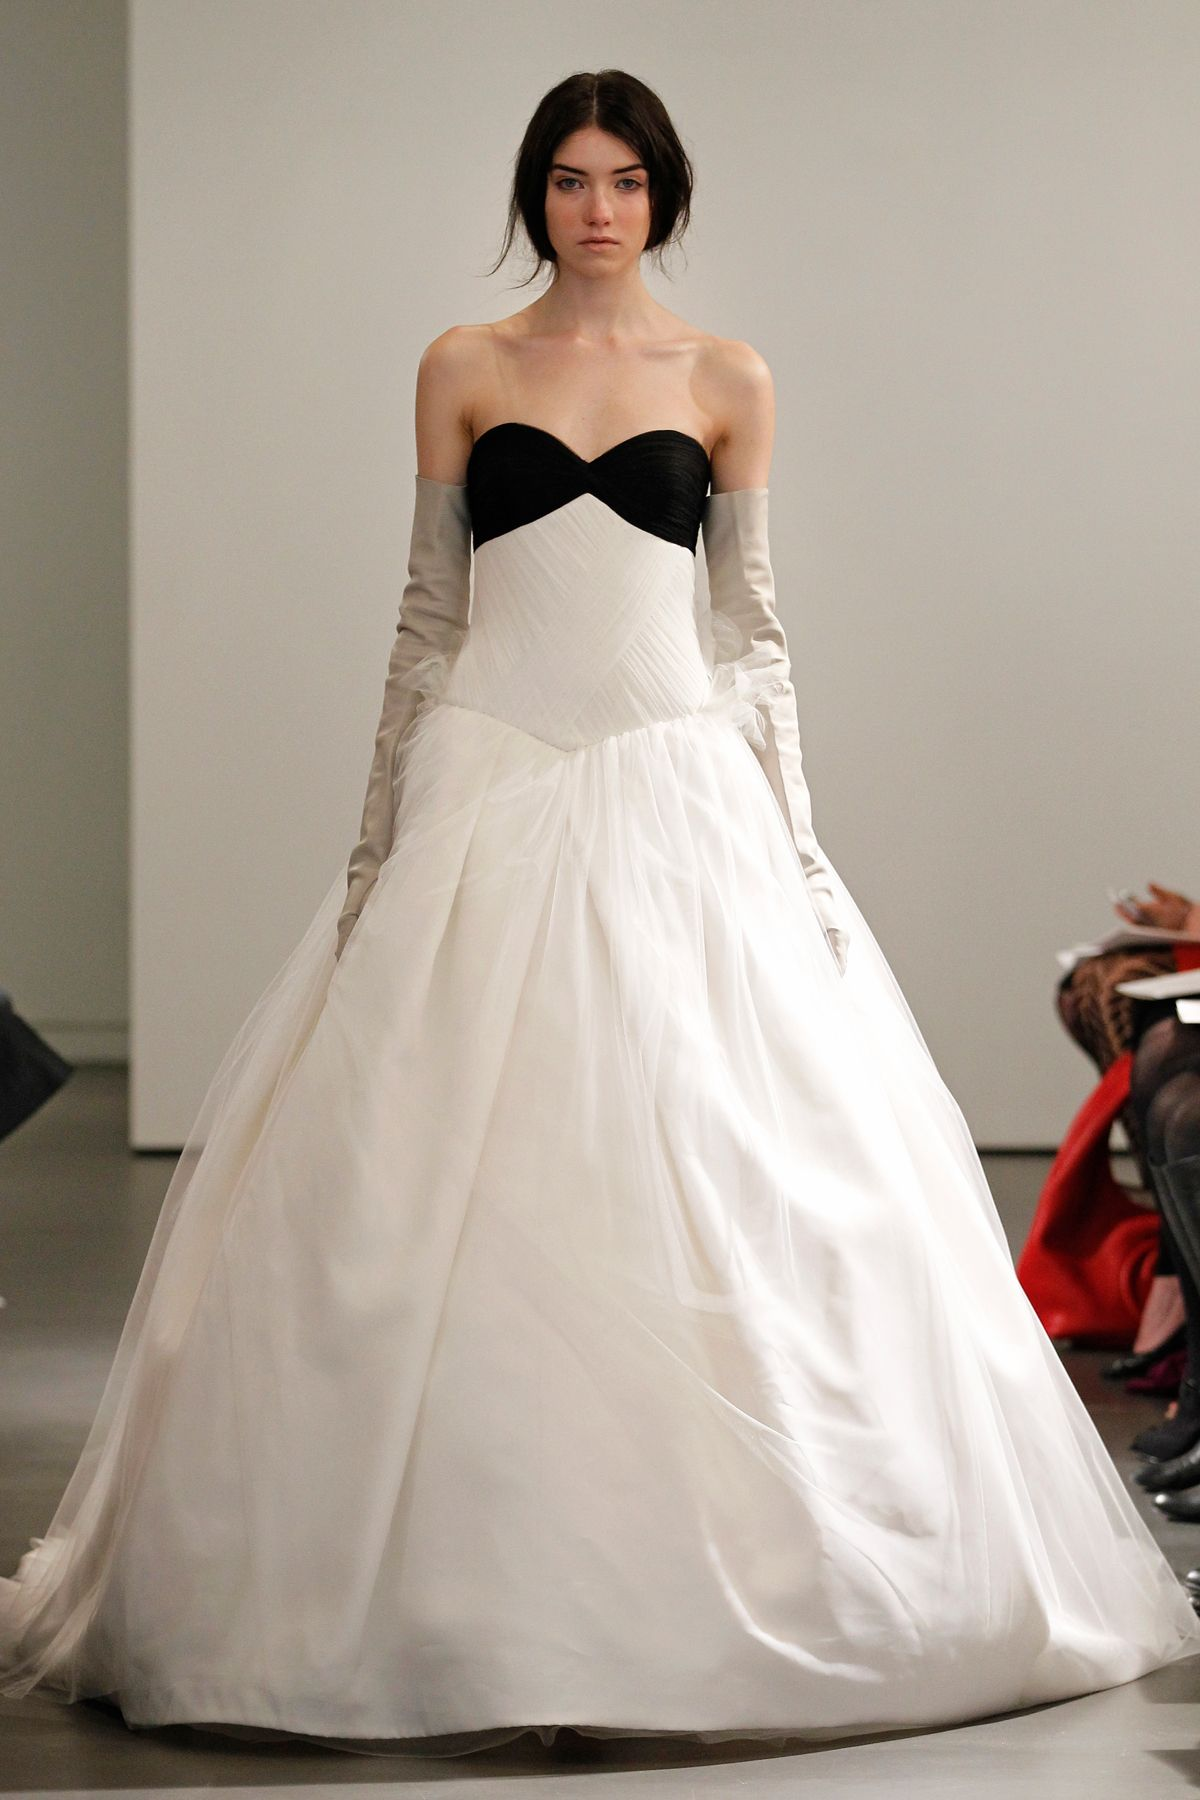 17 Best images about Vera Wang Bride Wedding Dresses 2014 on ...